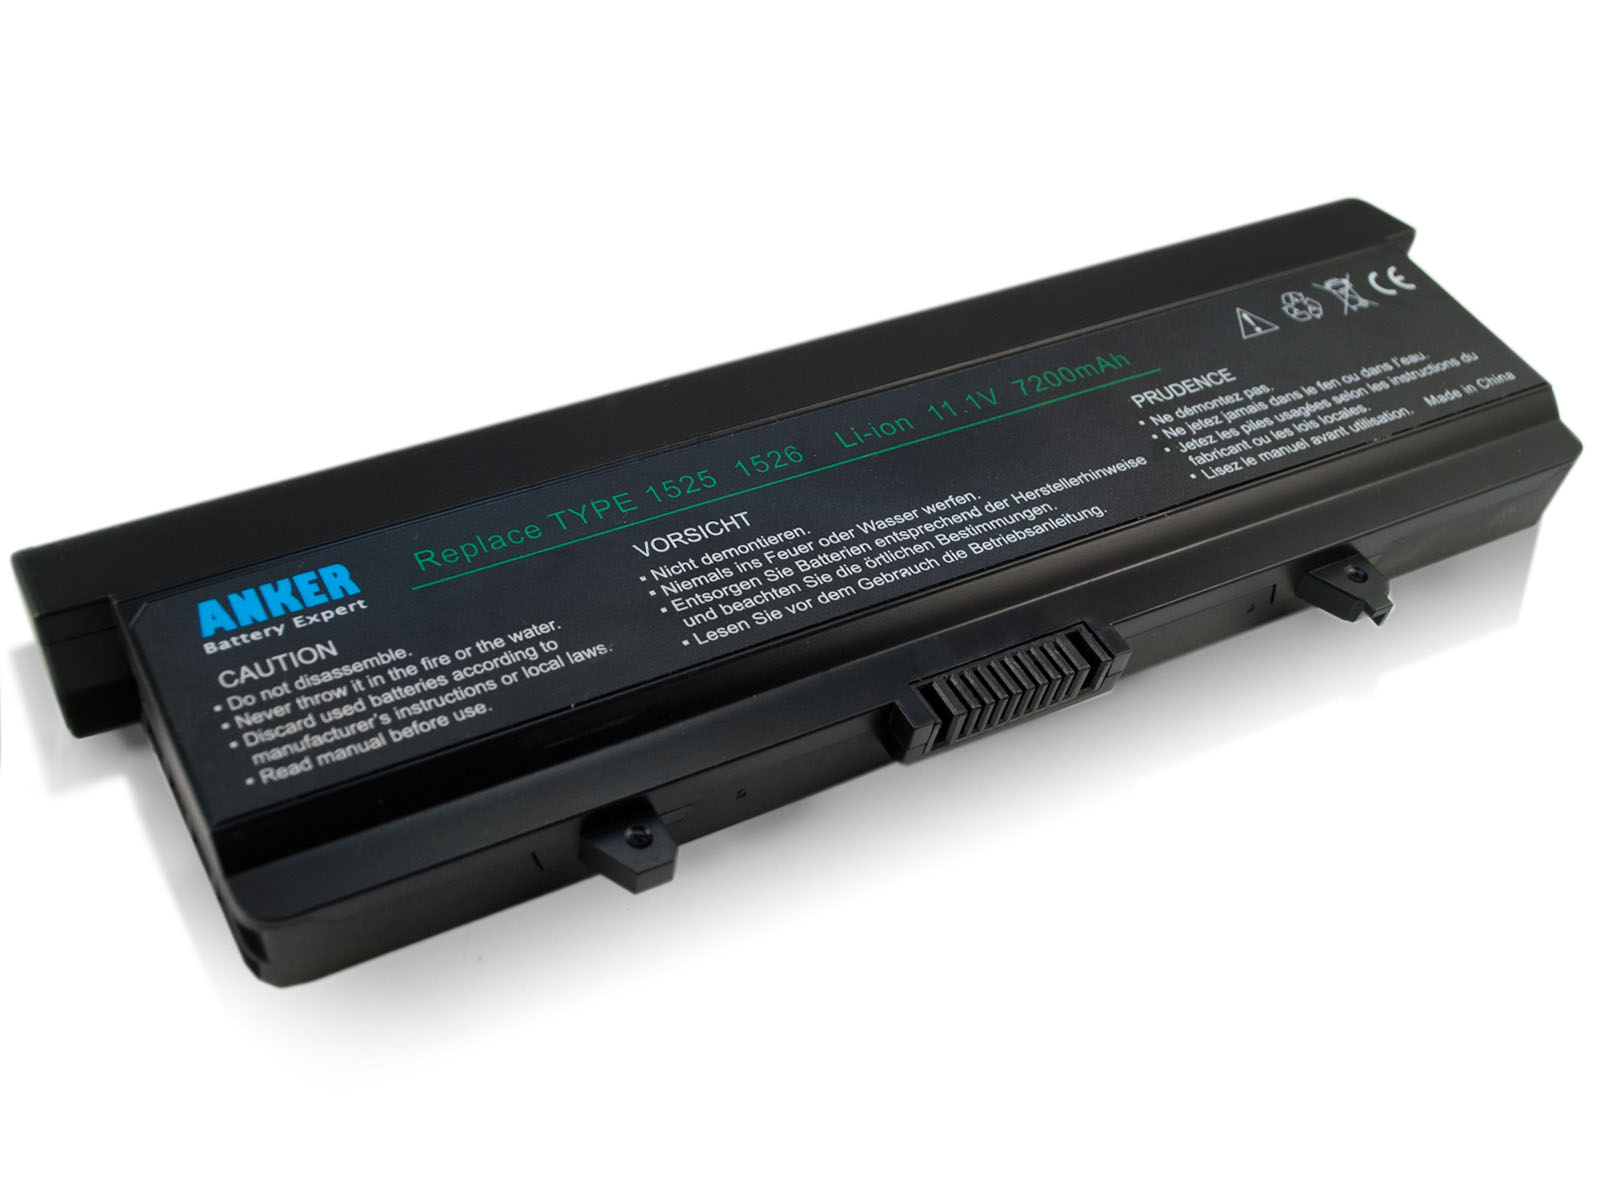 Batteries Plus Bulbs is your source for quality laptop batteries. Each of our laptop battery packs are made with the highest quality battery cells, from leading manufacturers. They are engineered to meet or surpass OEM specifications and keep your laptop powered while you are on-the-go.